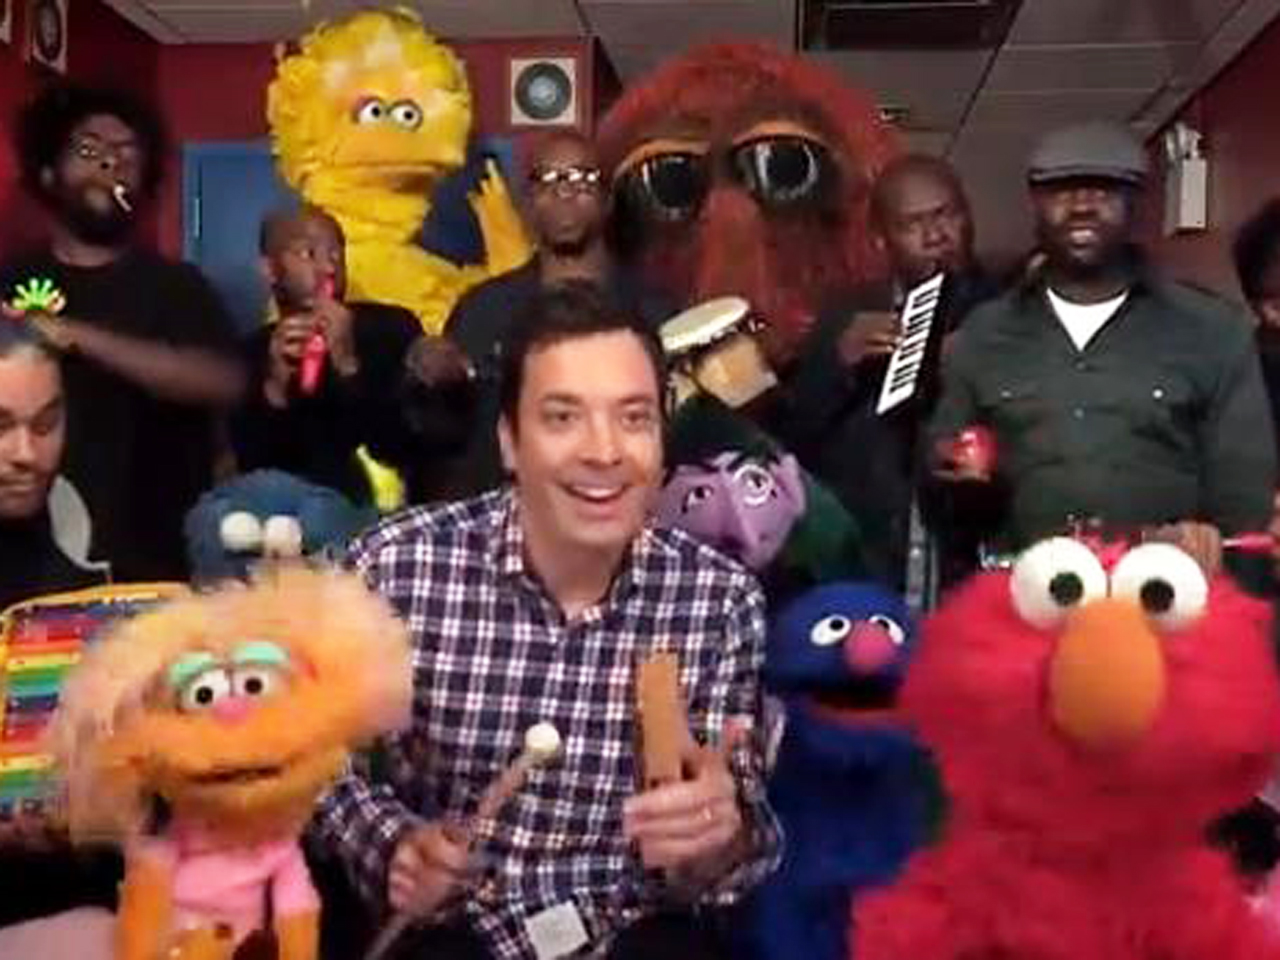 Image: Jimmy Fallon and Muppets